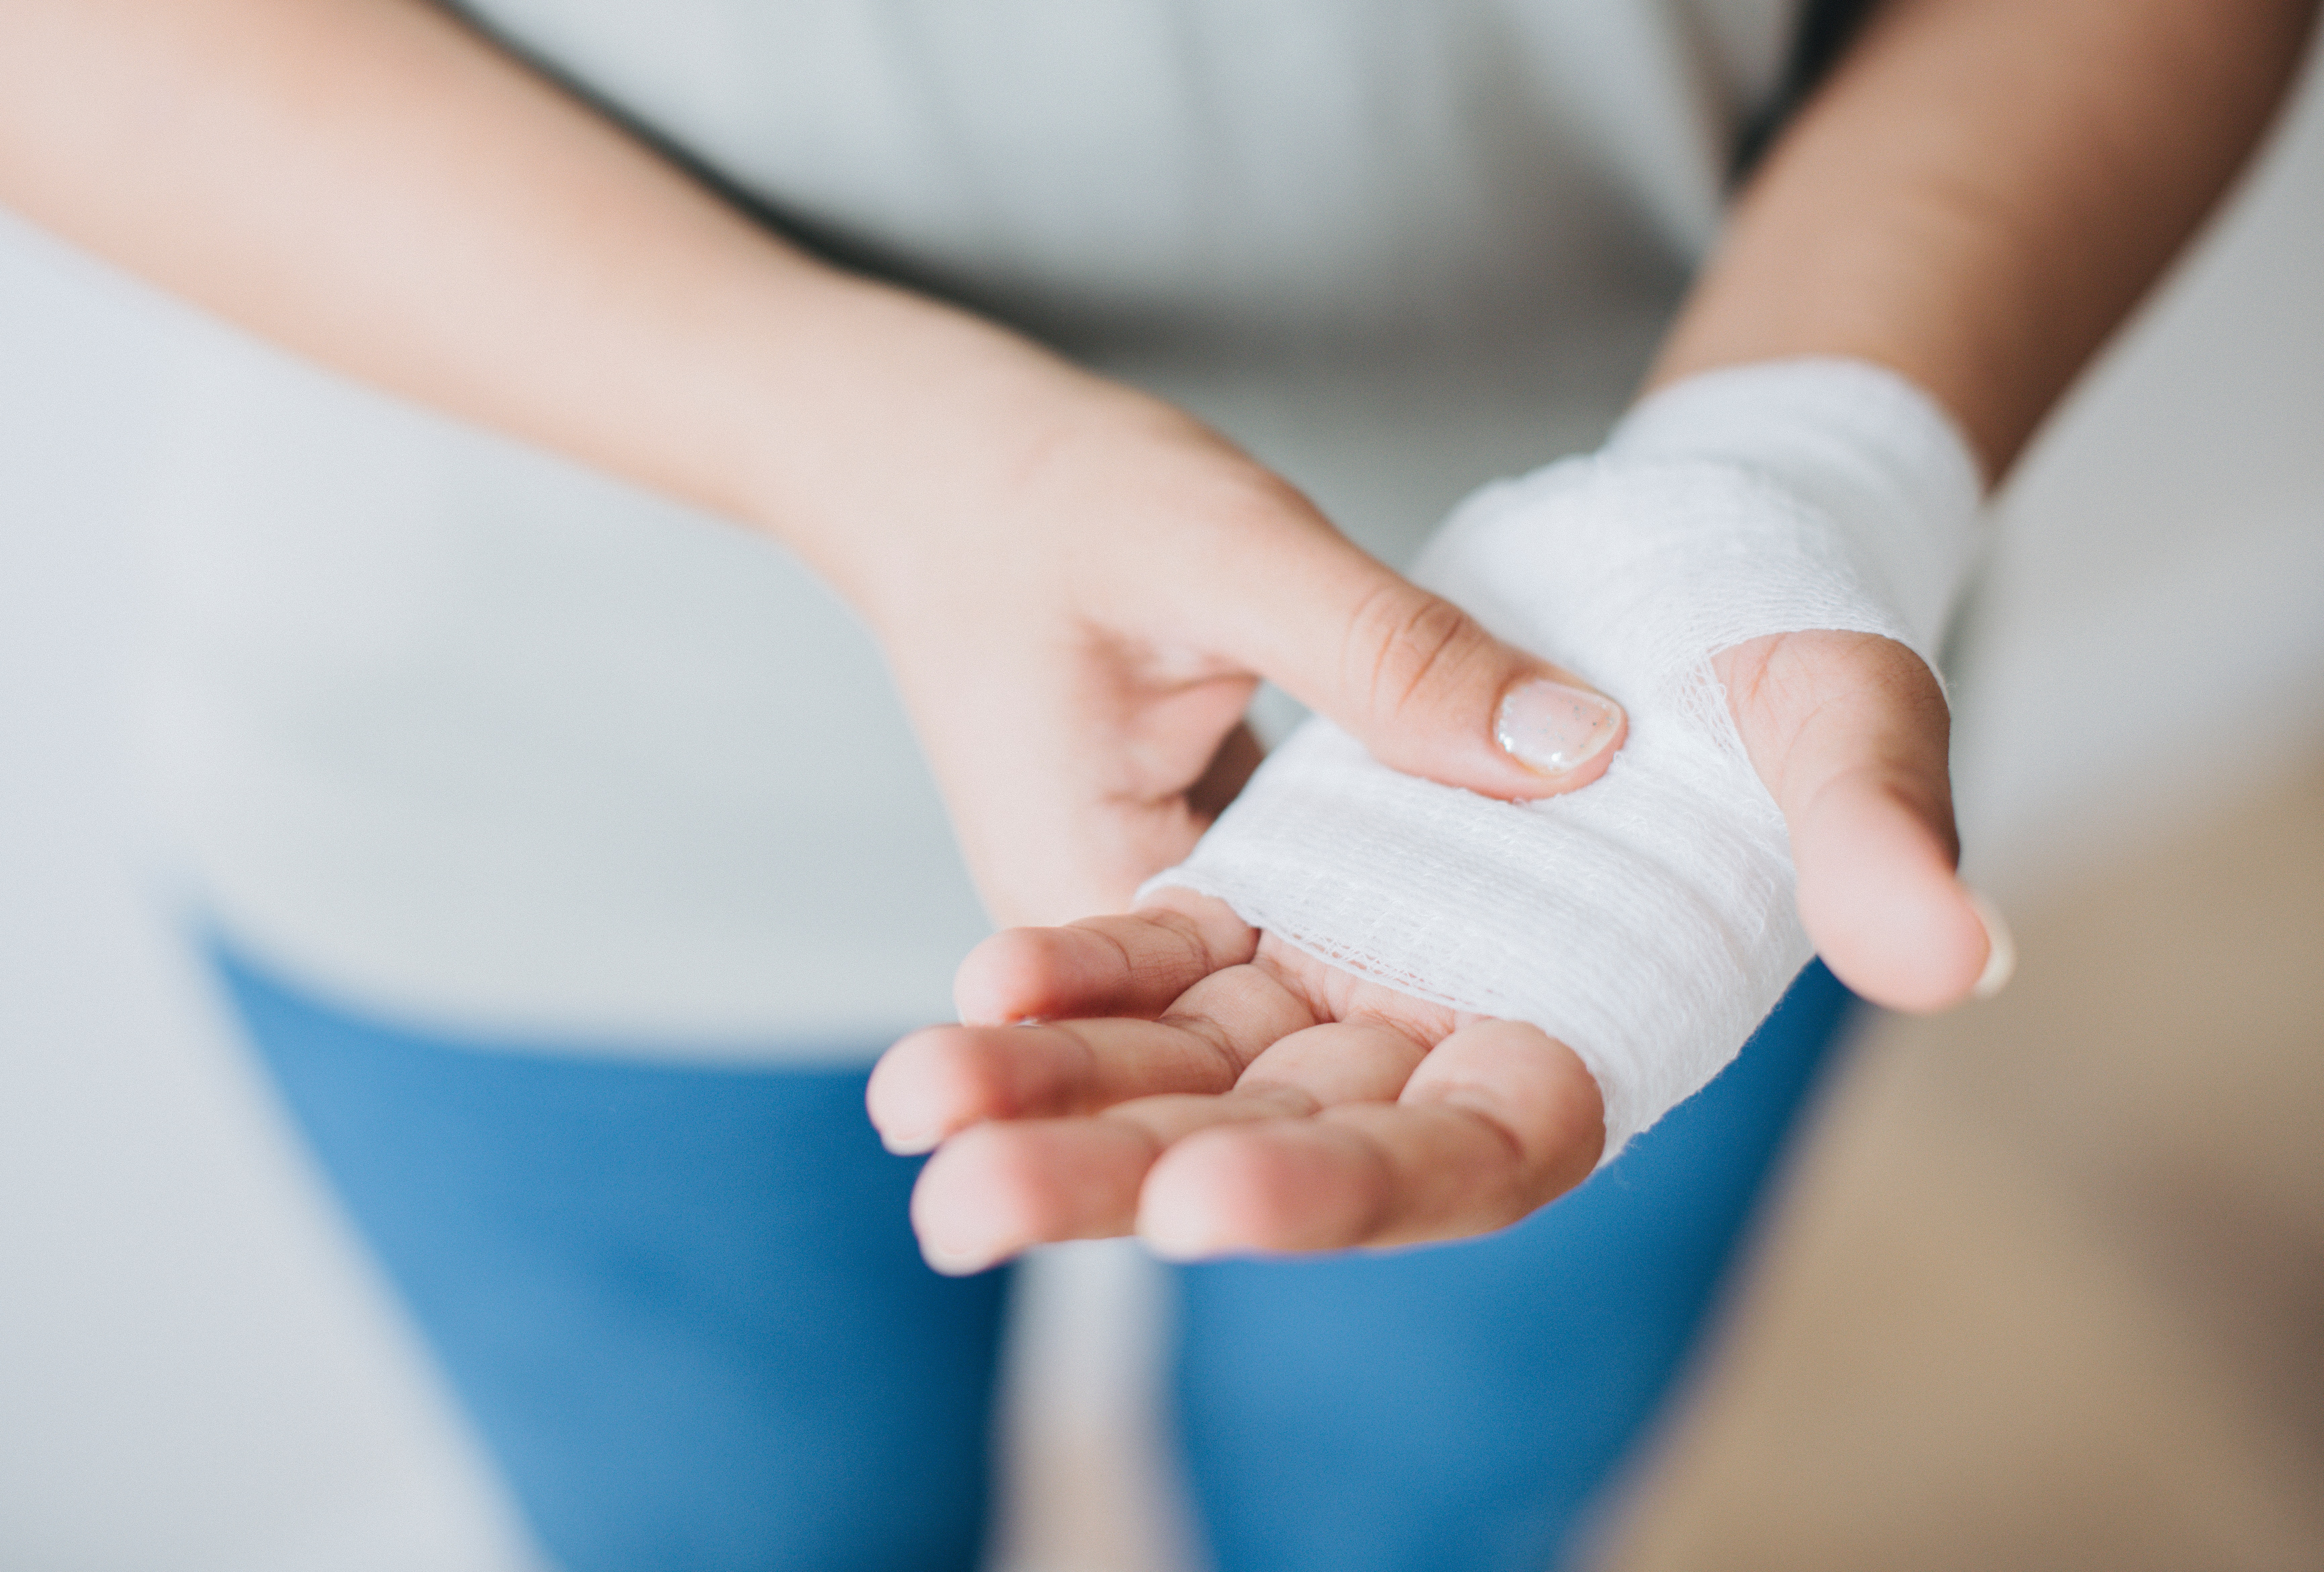 4 most common causes of Hand pain and wrist pain